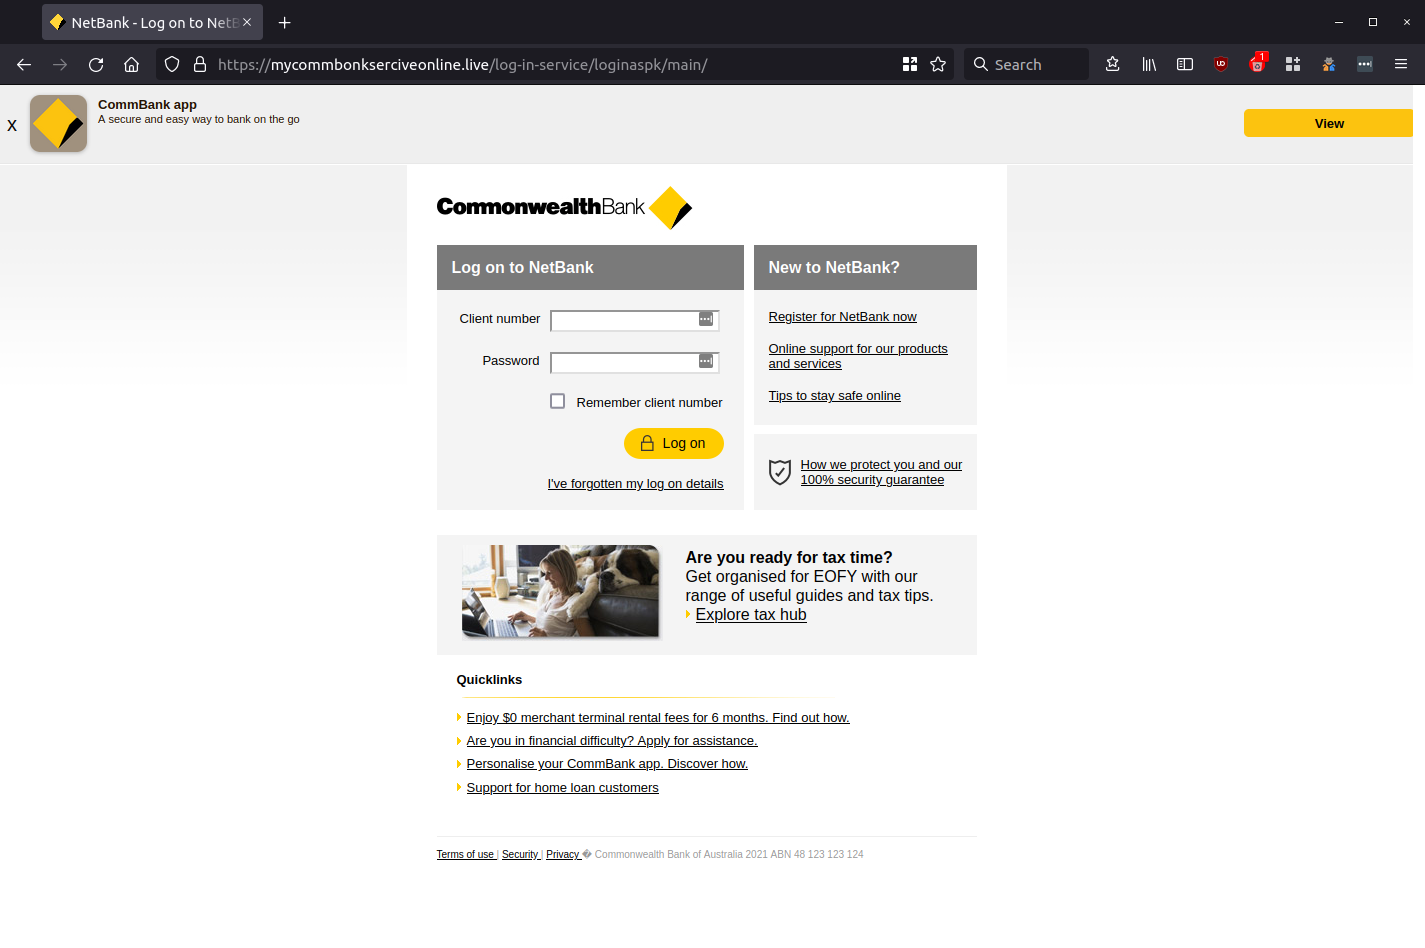 NetBank - Log on to NetBank - Enjoy simple and secure online banking from Commonwealth Bank — Mozilla Firefox_662